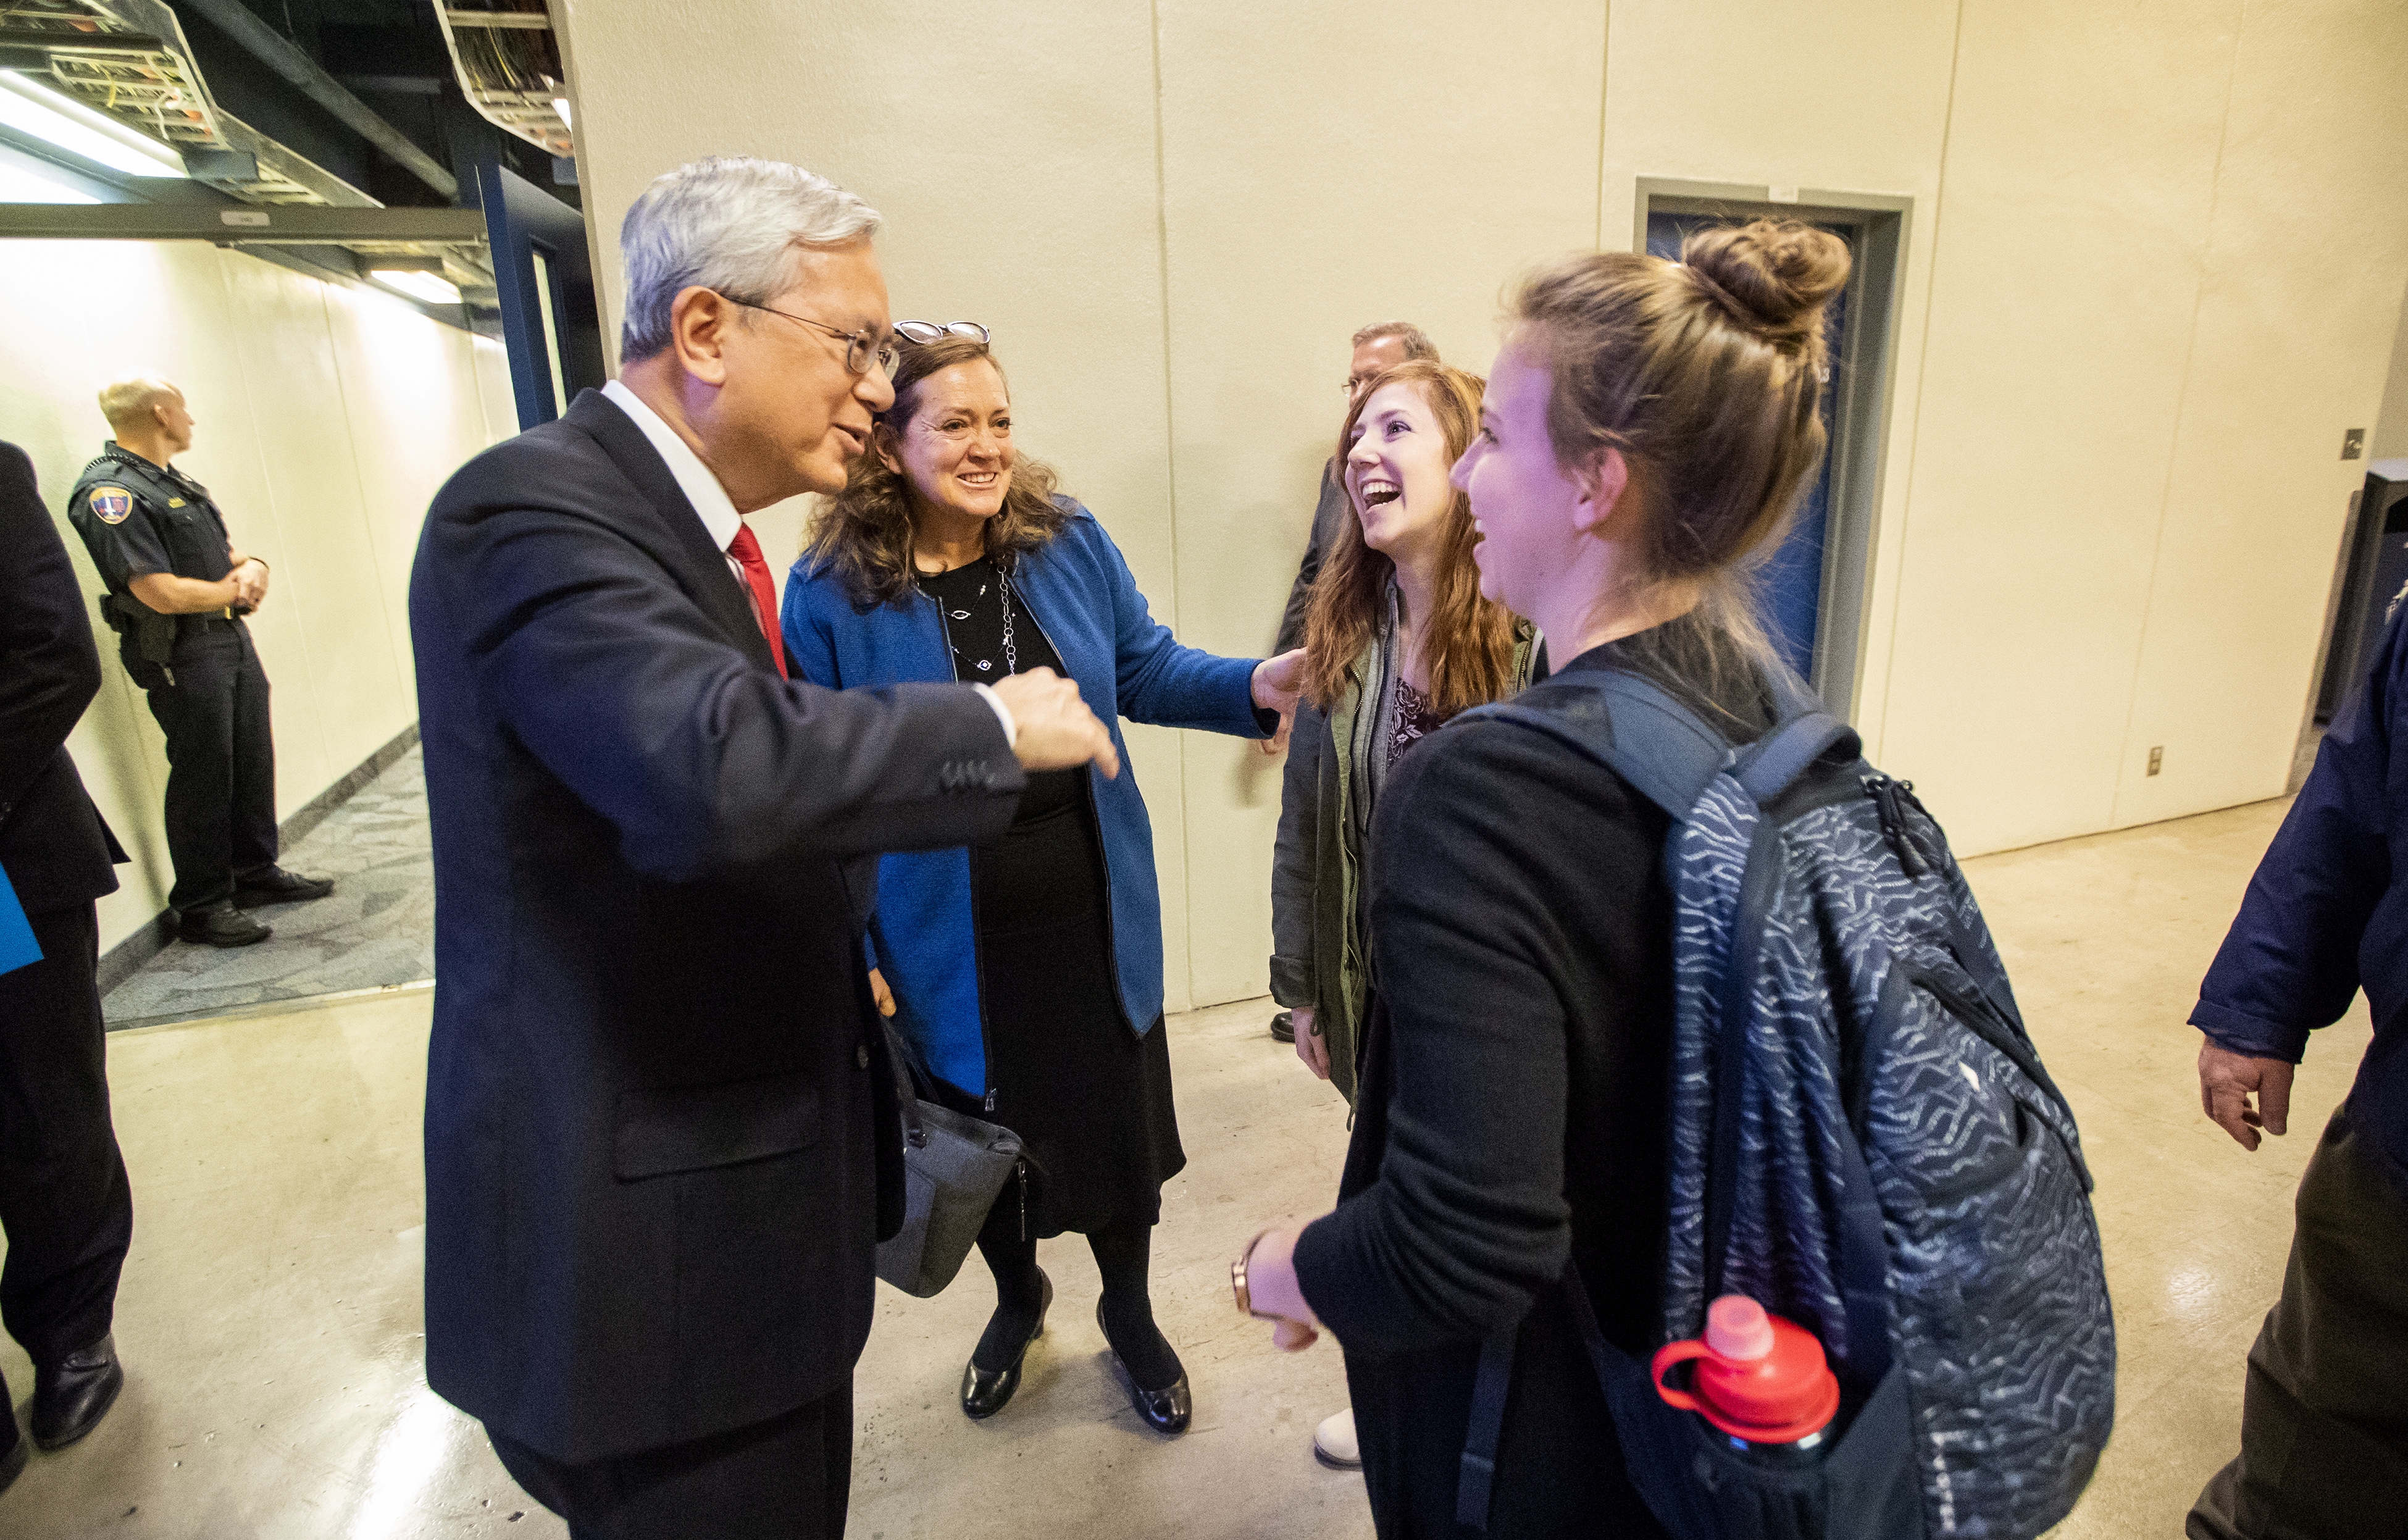 Elder Gerrit W. Gong of the Quorum of the Twelve Apostles and his wife, Sister Susan Gong, speak with Anna Evans and Sophie Richards prior to a BYU campus devotional on Tuesday, Oct. 16, 2018.